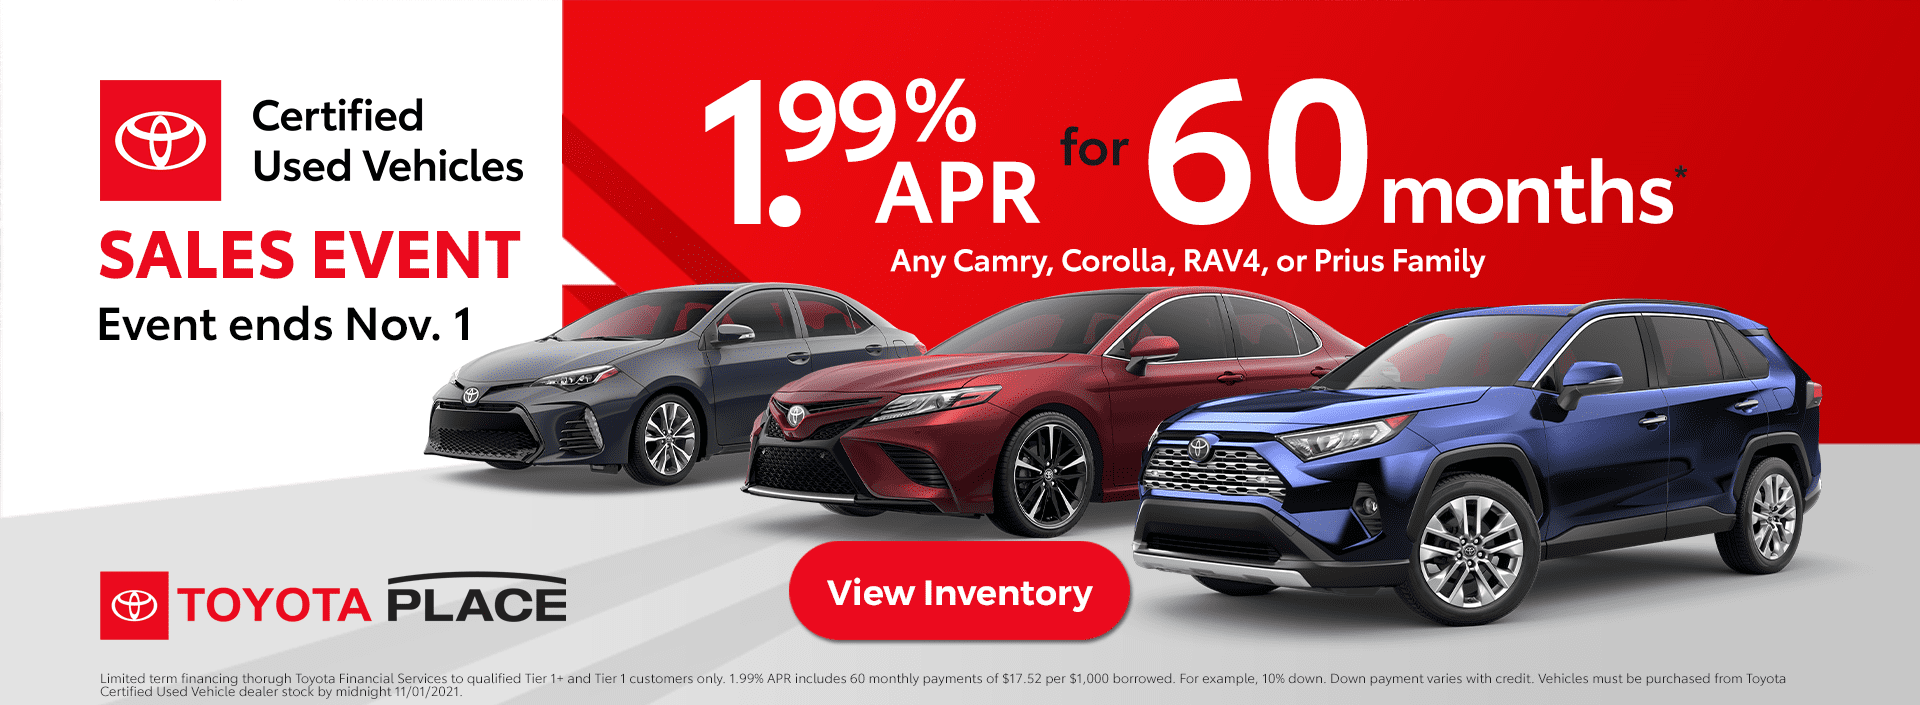 Toyota Certified Used Vehicle Sales Event Used Vehicle Specials